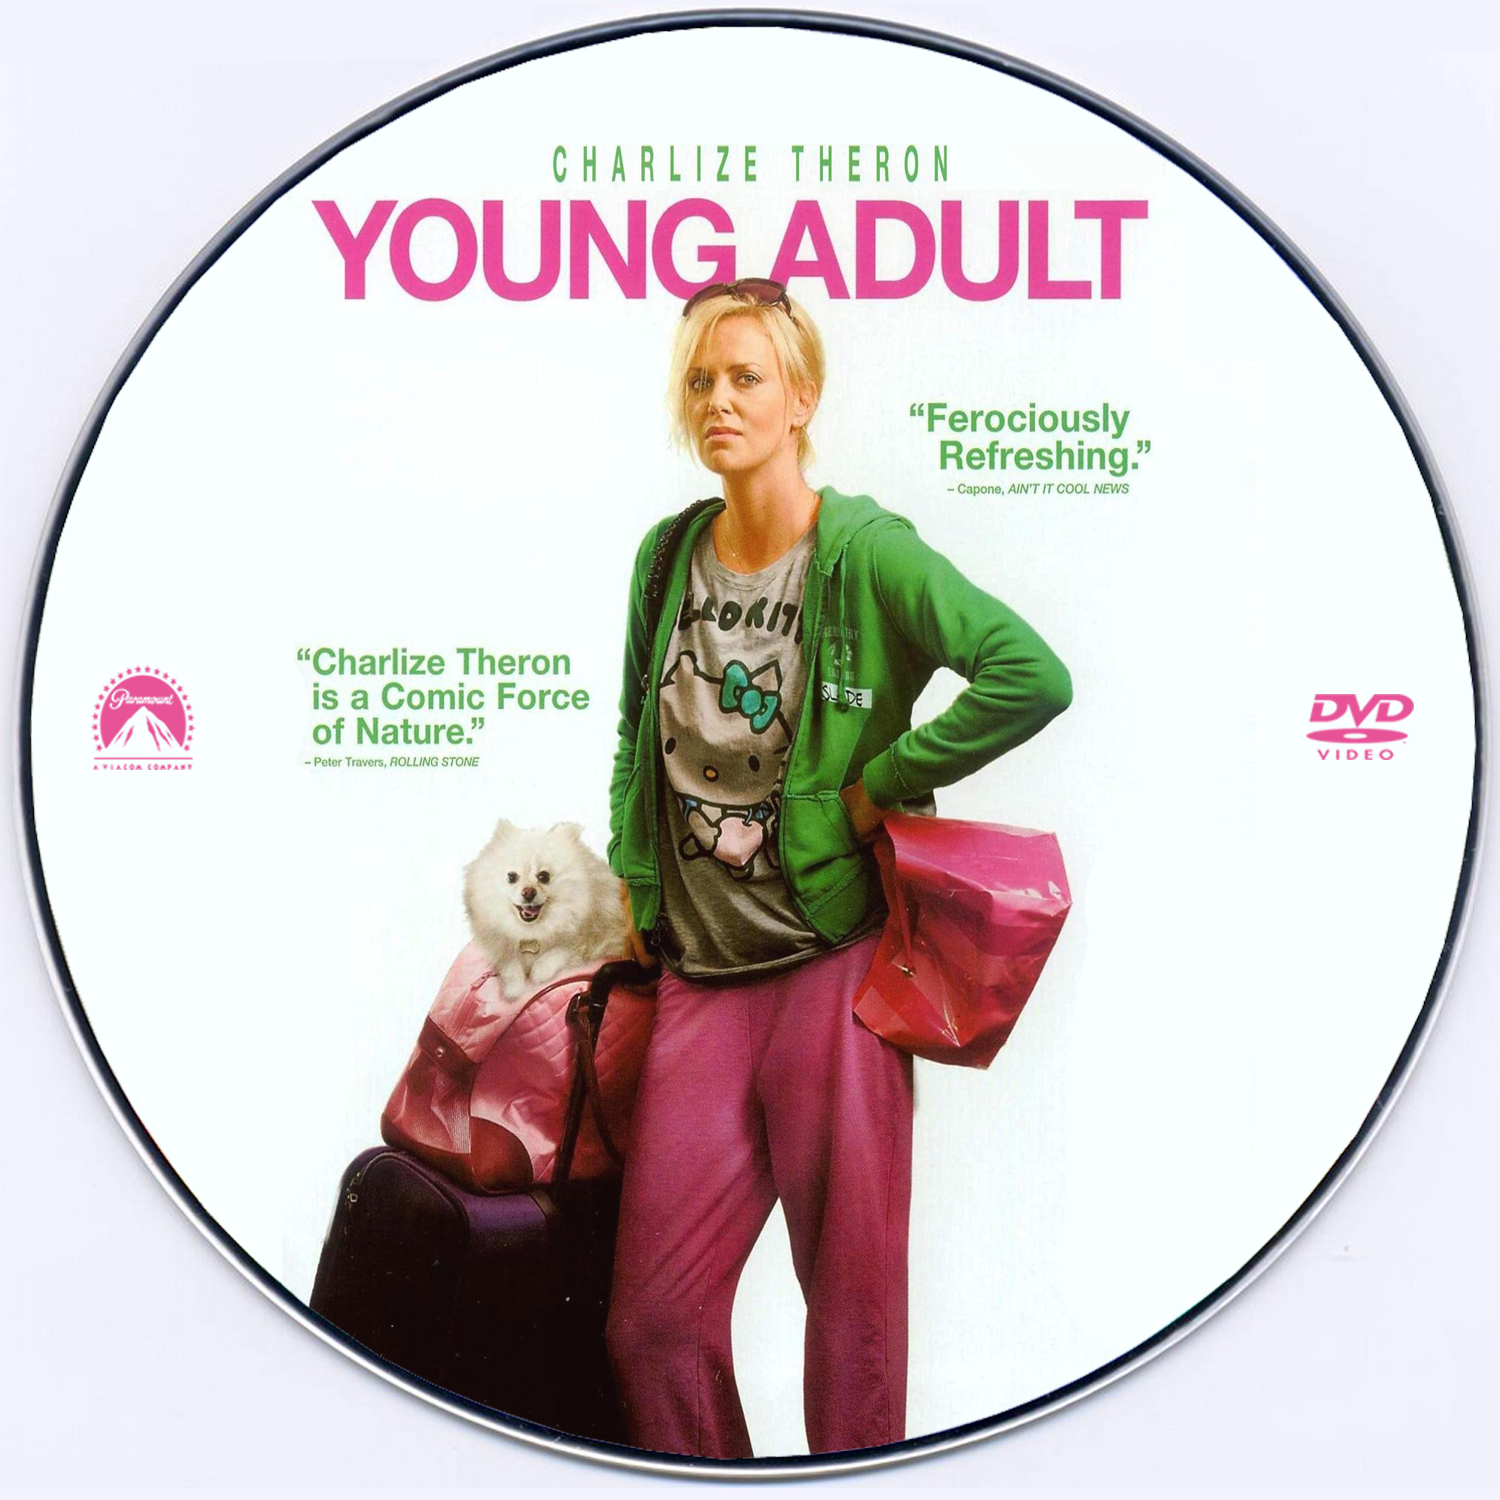 Adult cover dvd video